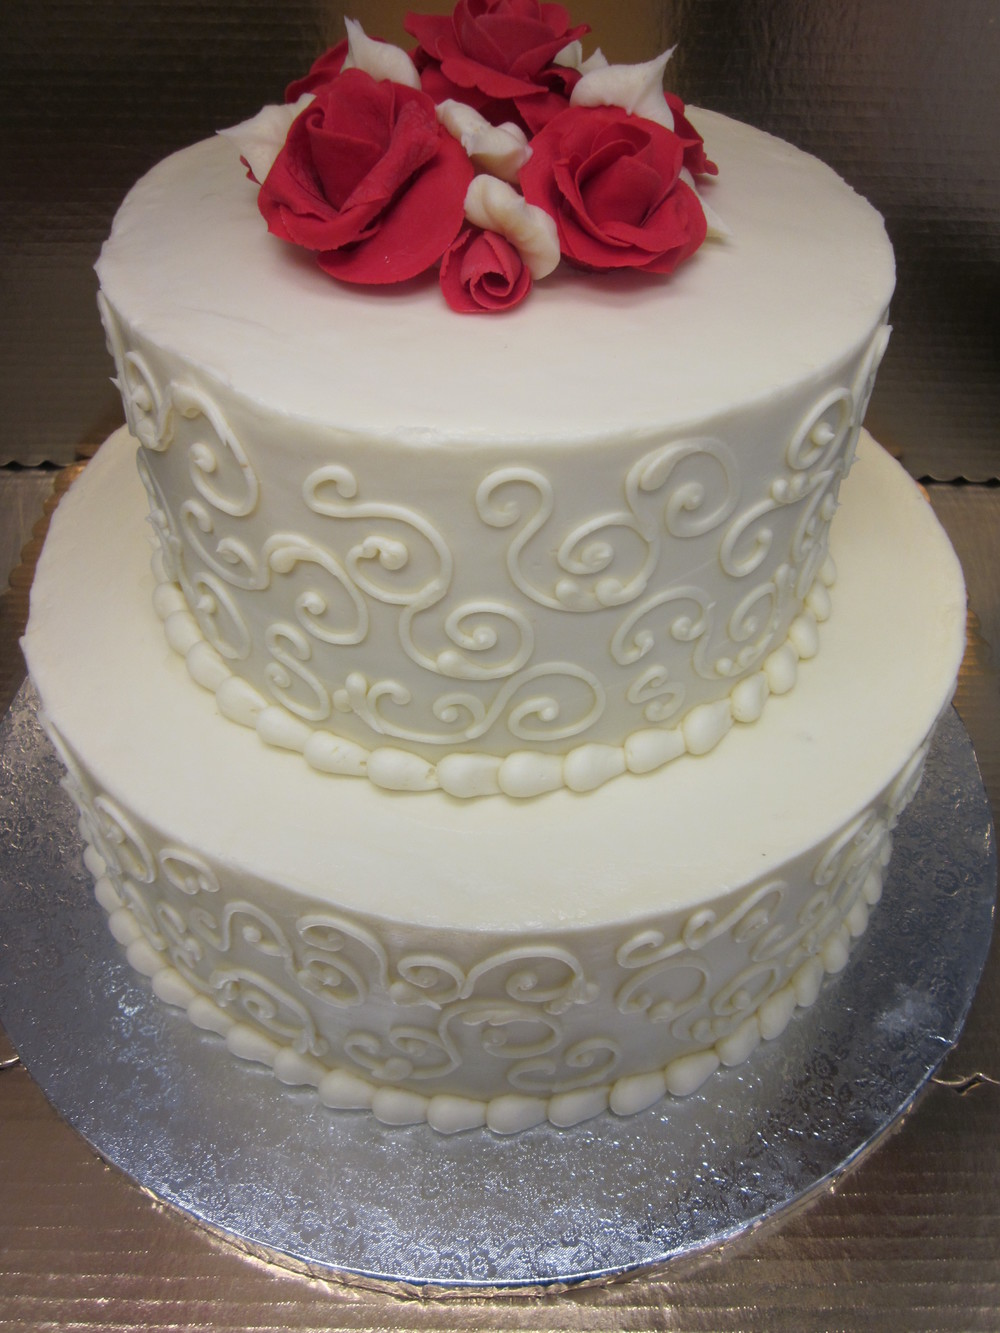 Red Roses and Scroll Wedding Cake